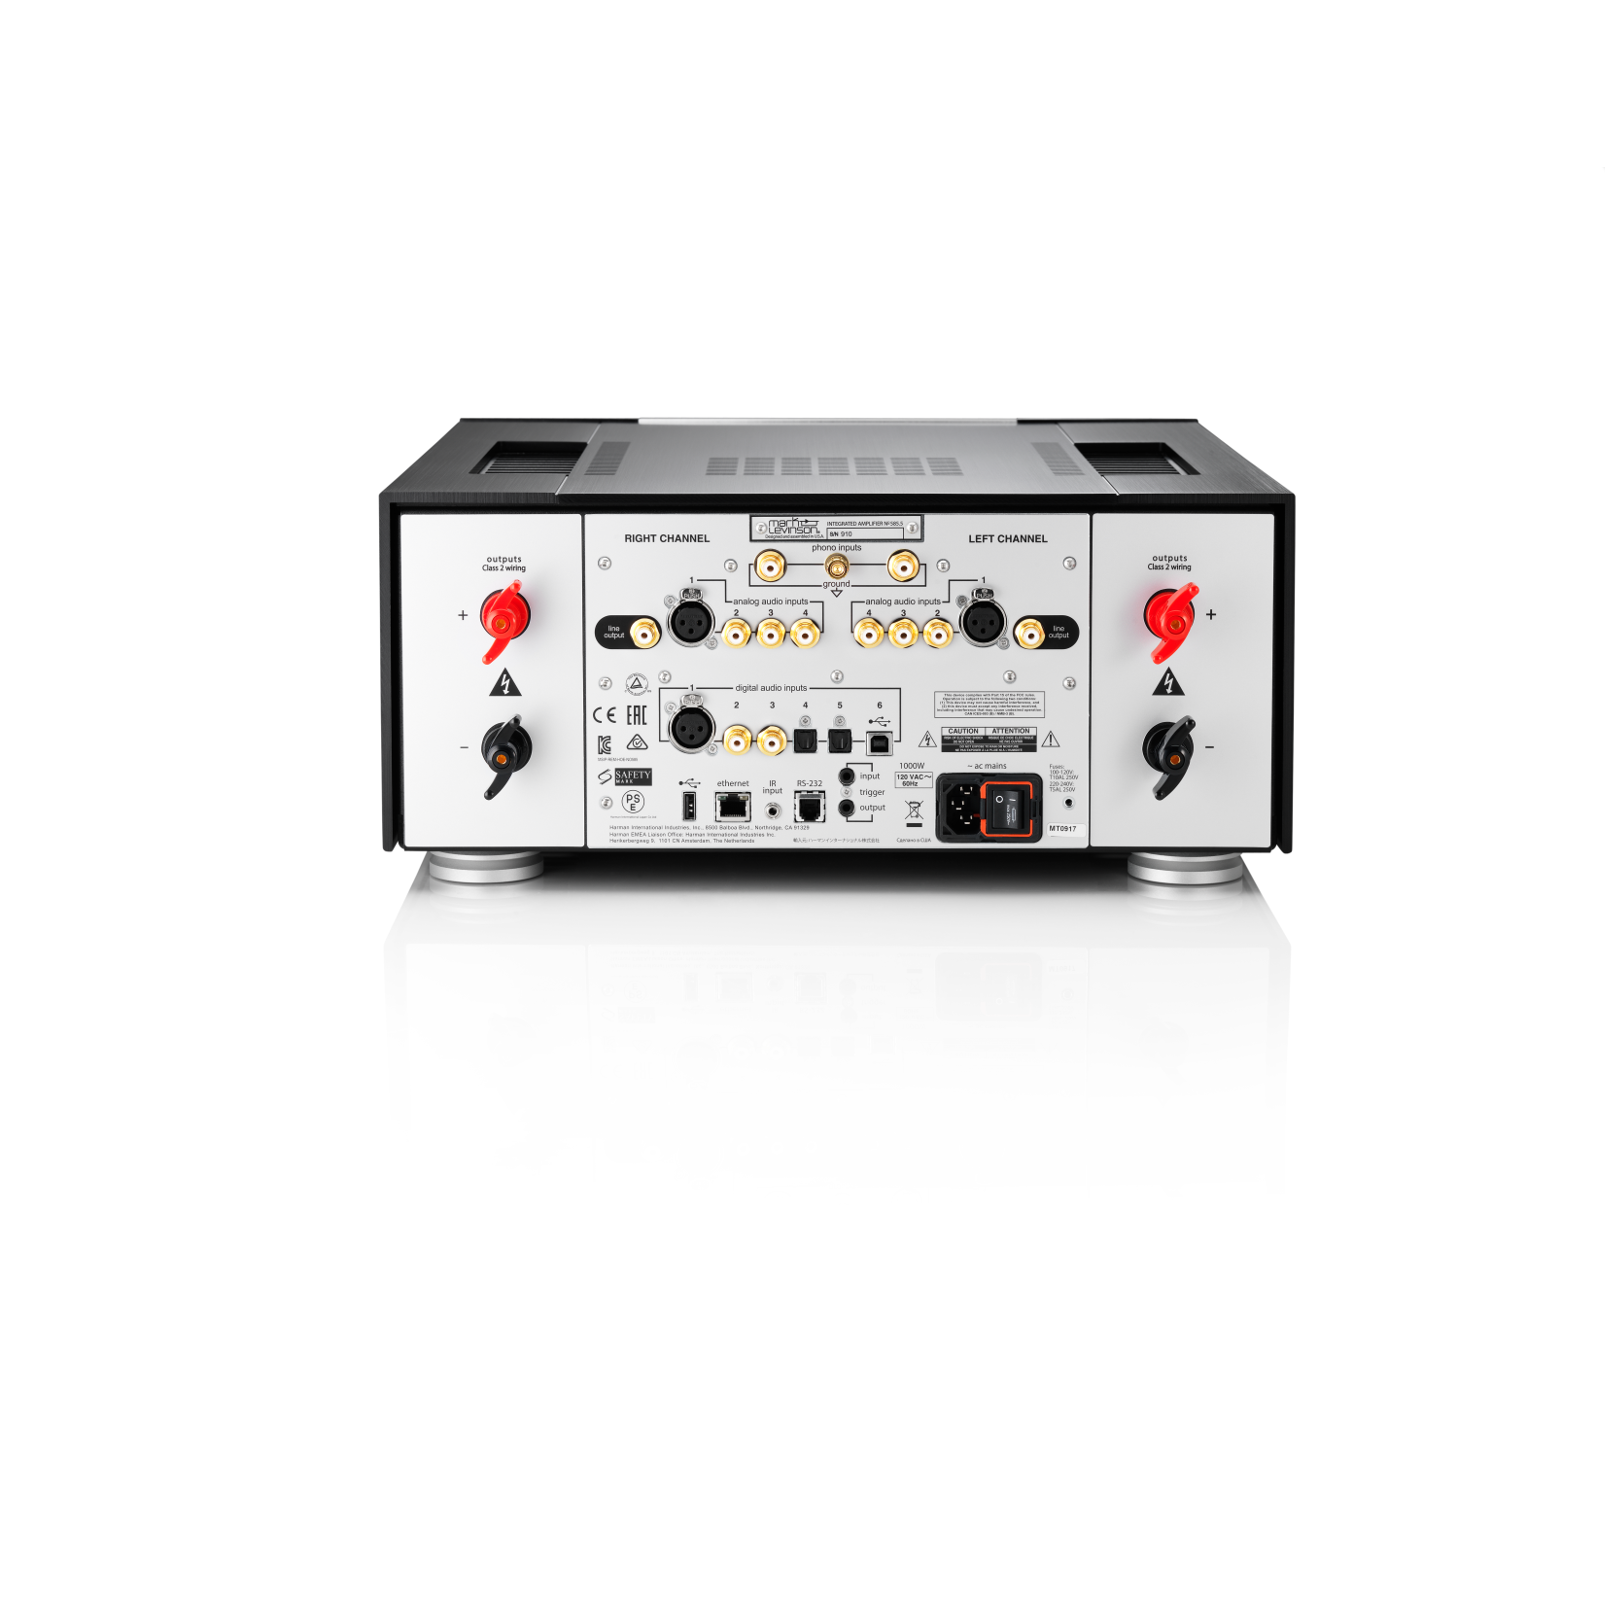 Nº585.5 - Black - Fully Discrete Integrated Amplifier with Class A Pure Phono Stage - Back